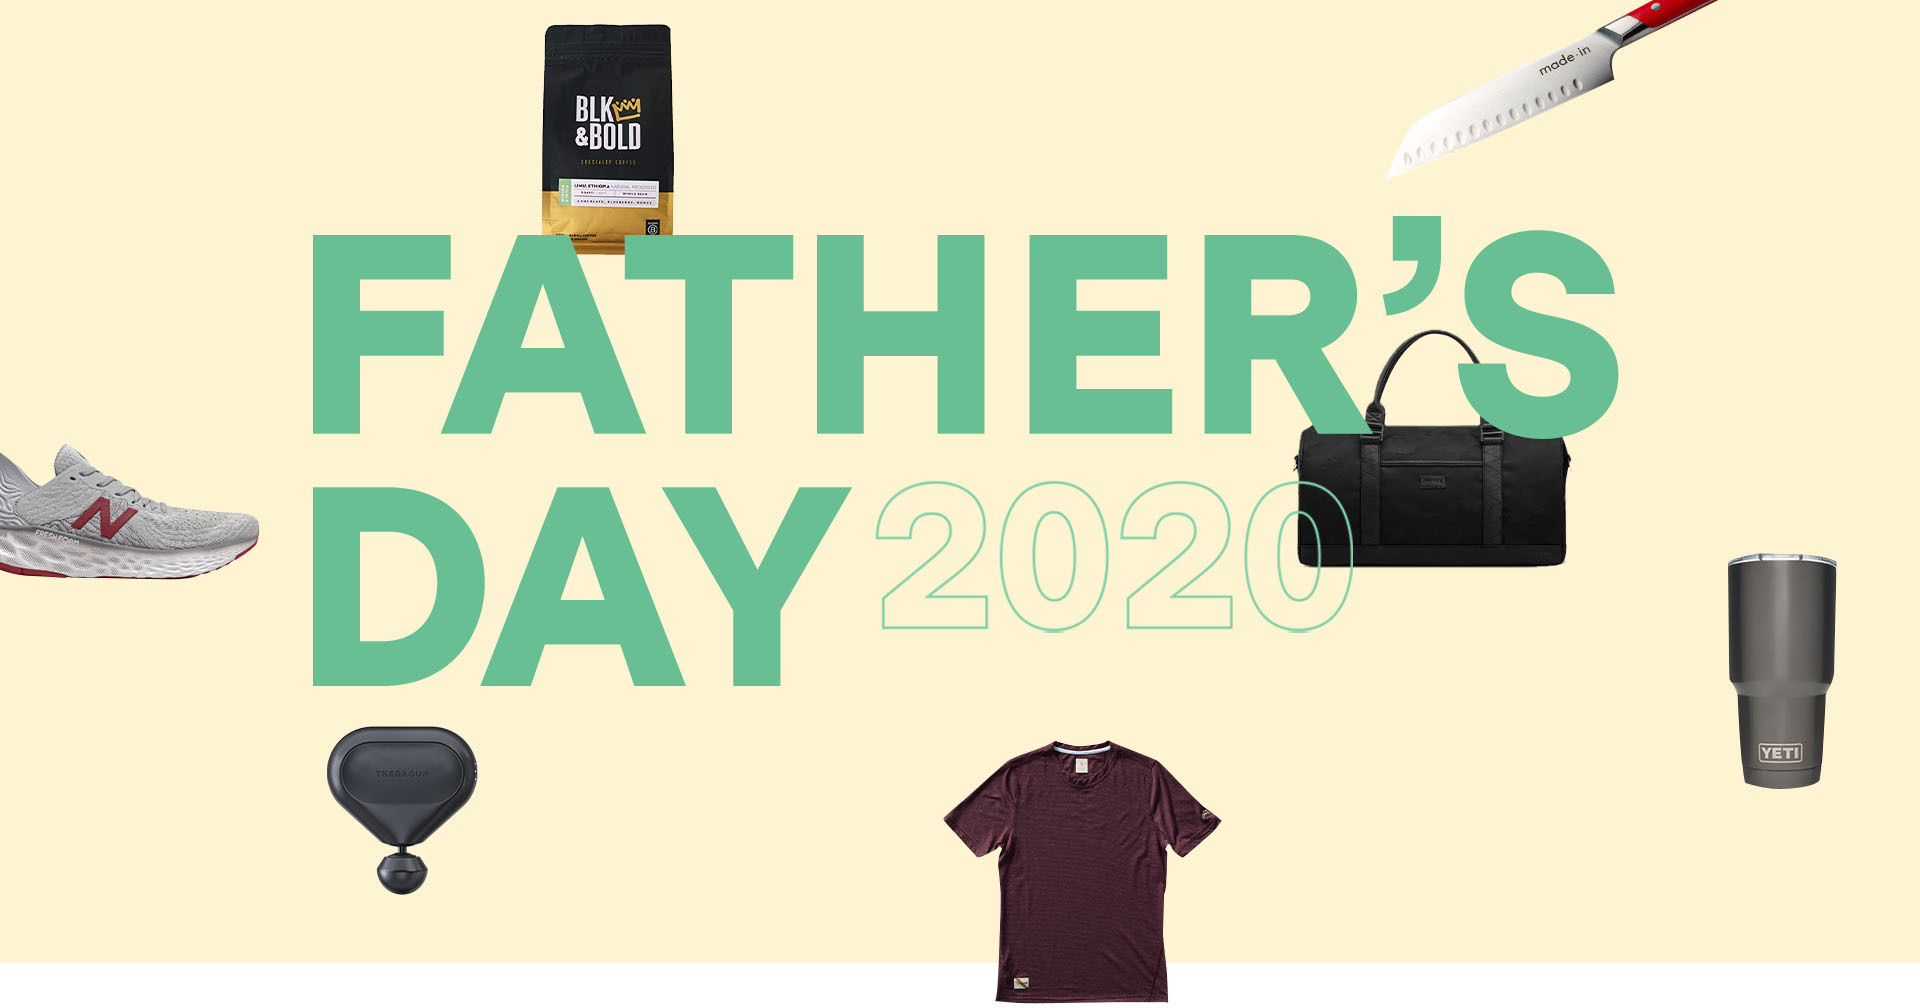 50 Father's Day Gifts That Will Help Turn This Stupid Year Around